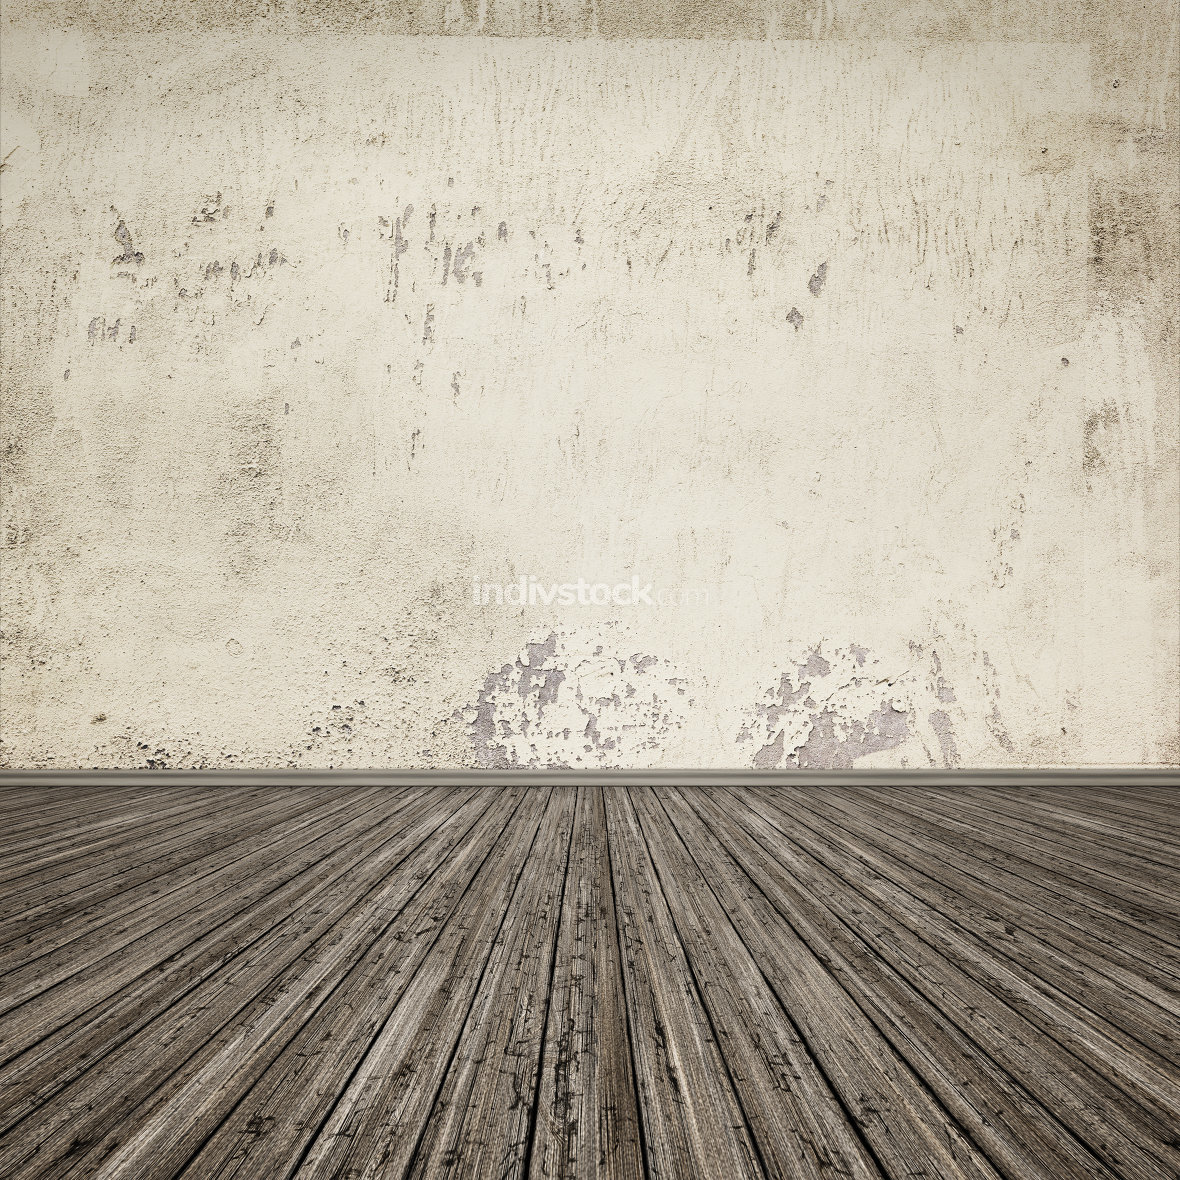 wooden floor background image